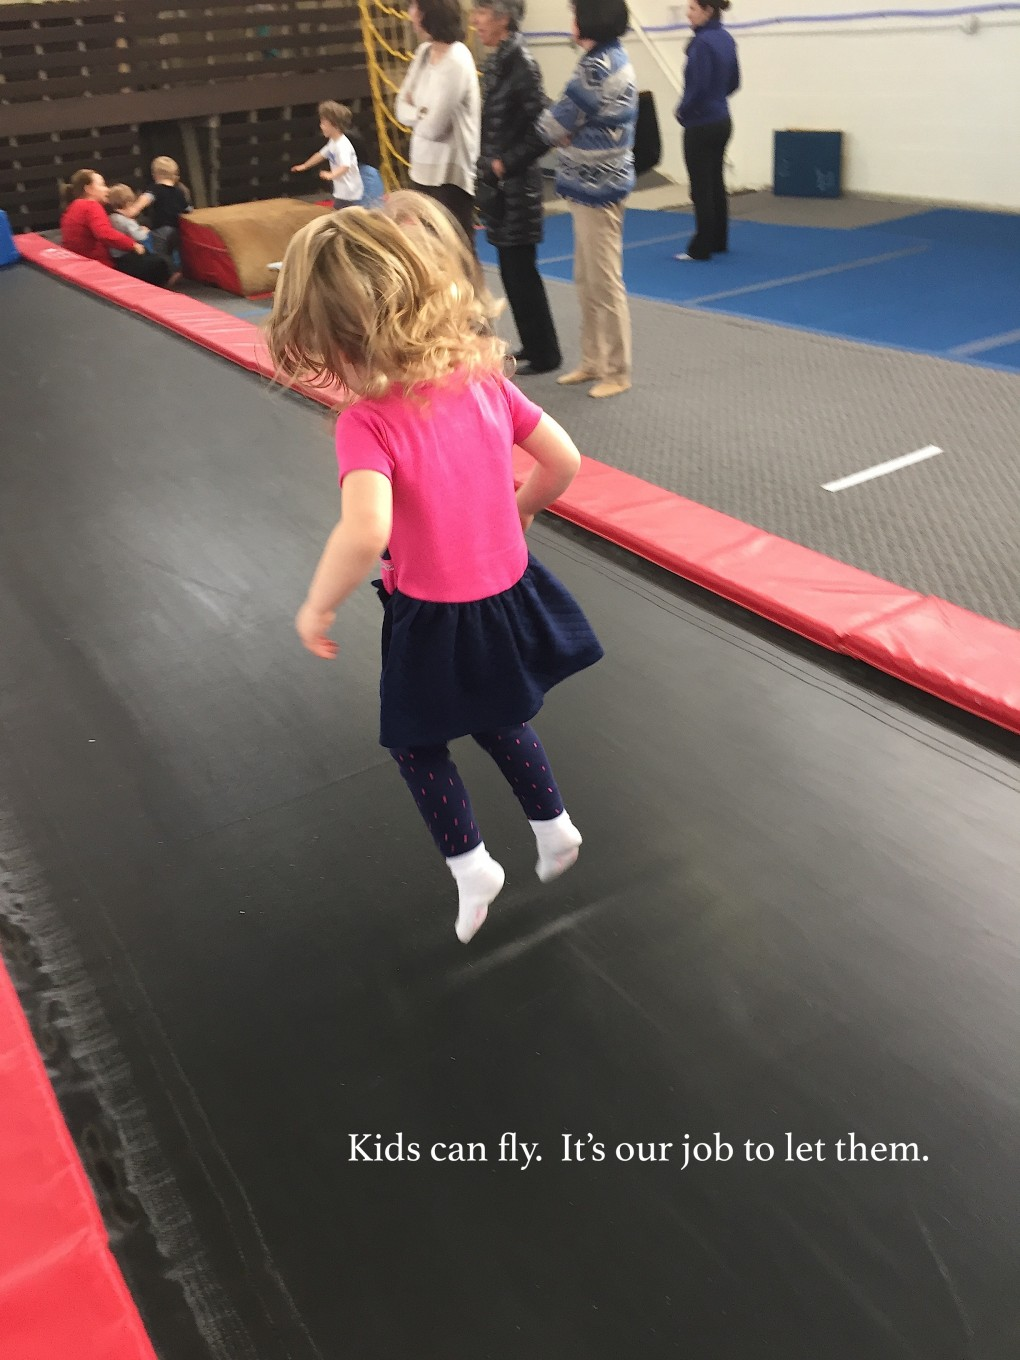 Kids Can Fly